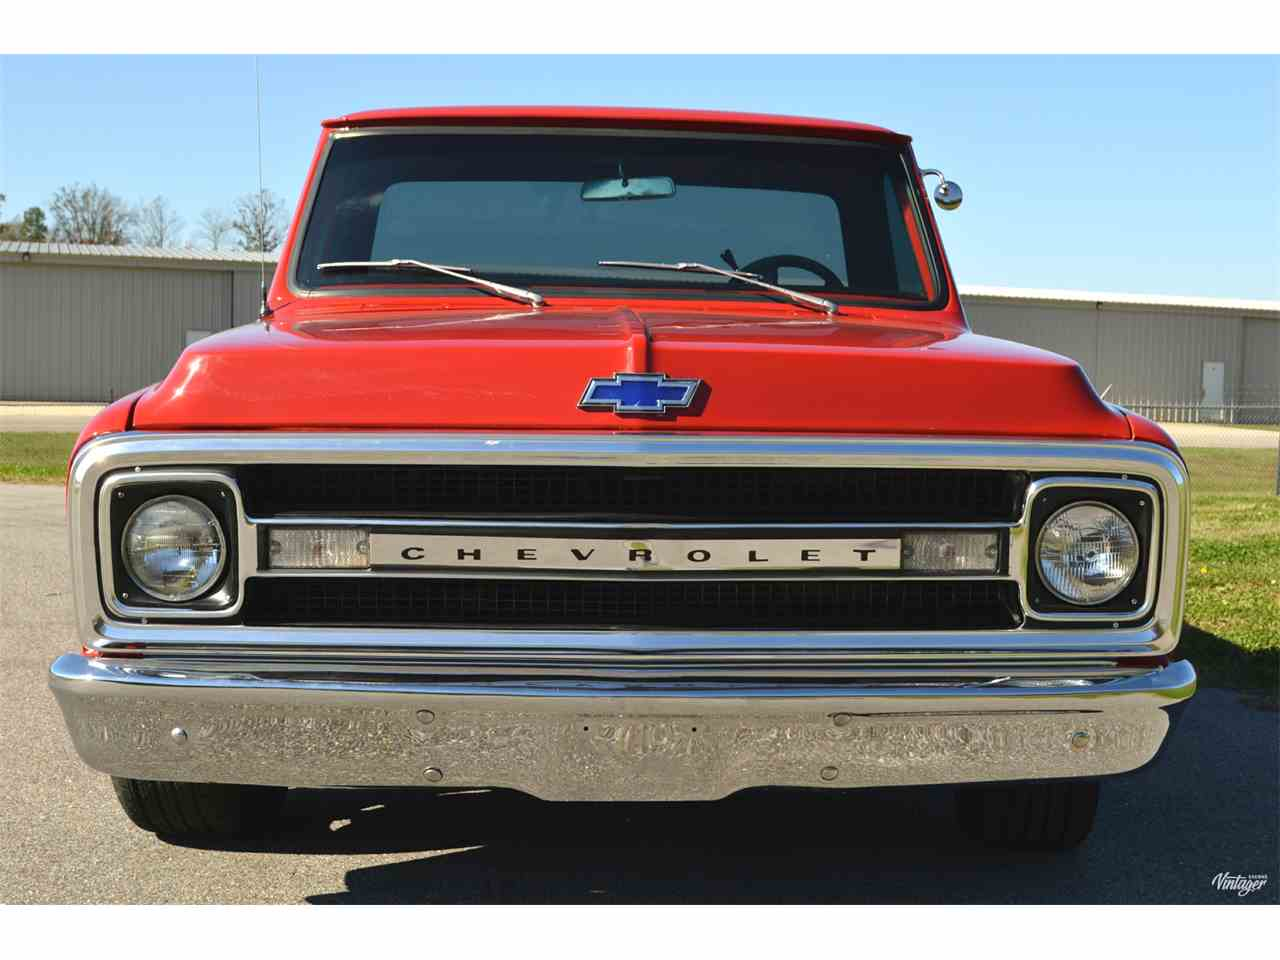 All Chevy 1969 chevrolet c10 for sale : 1969 Chevrolet C10 for Sale | ClassicCars.com | CC-1040563